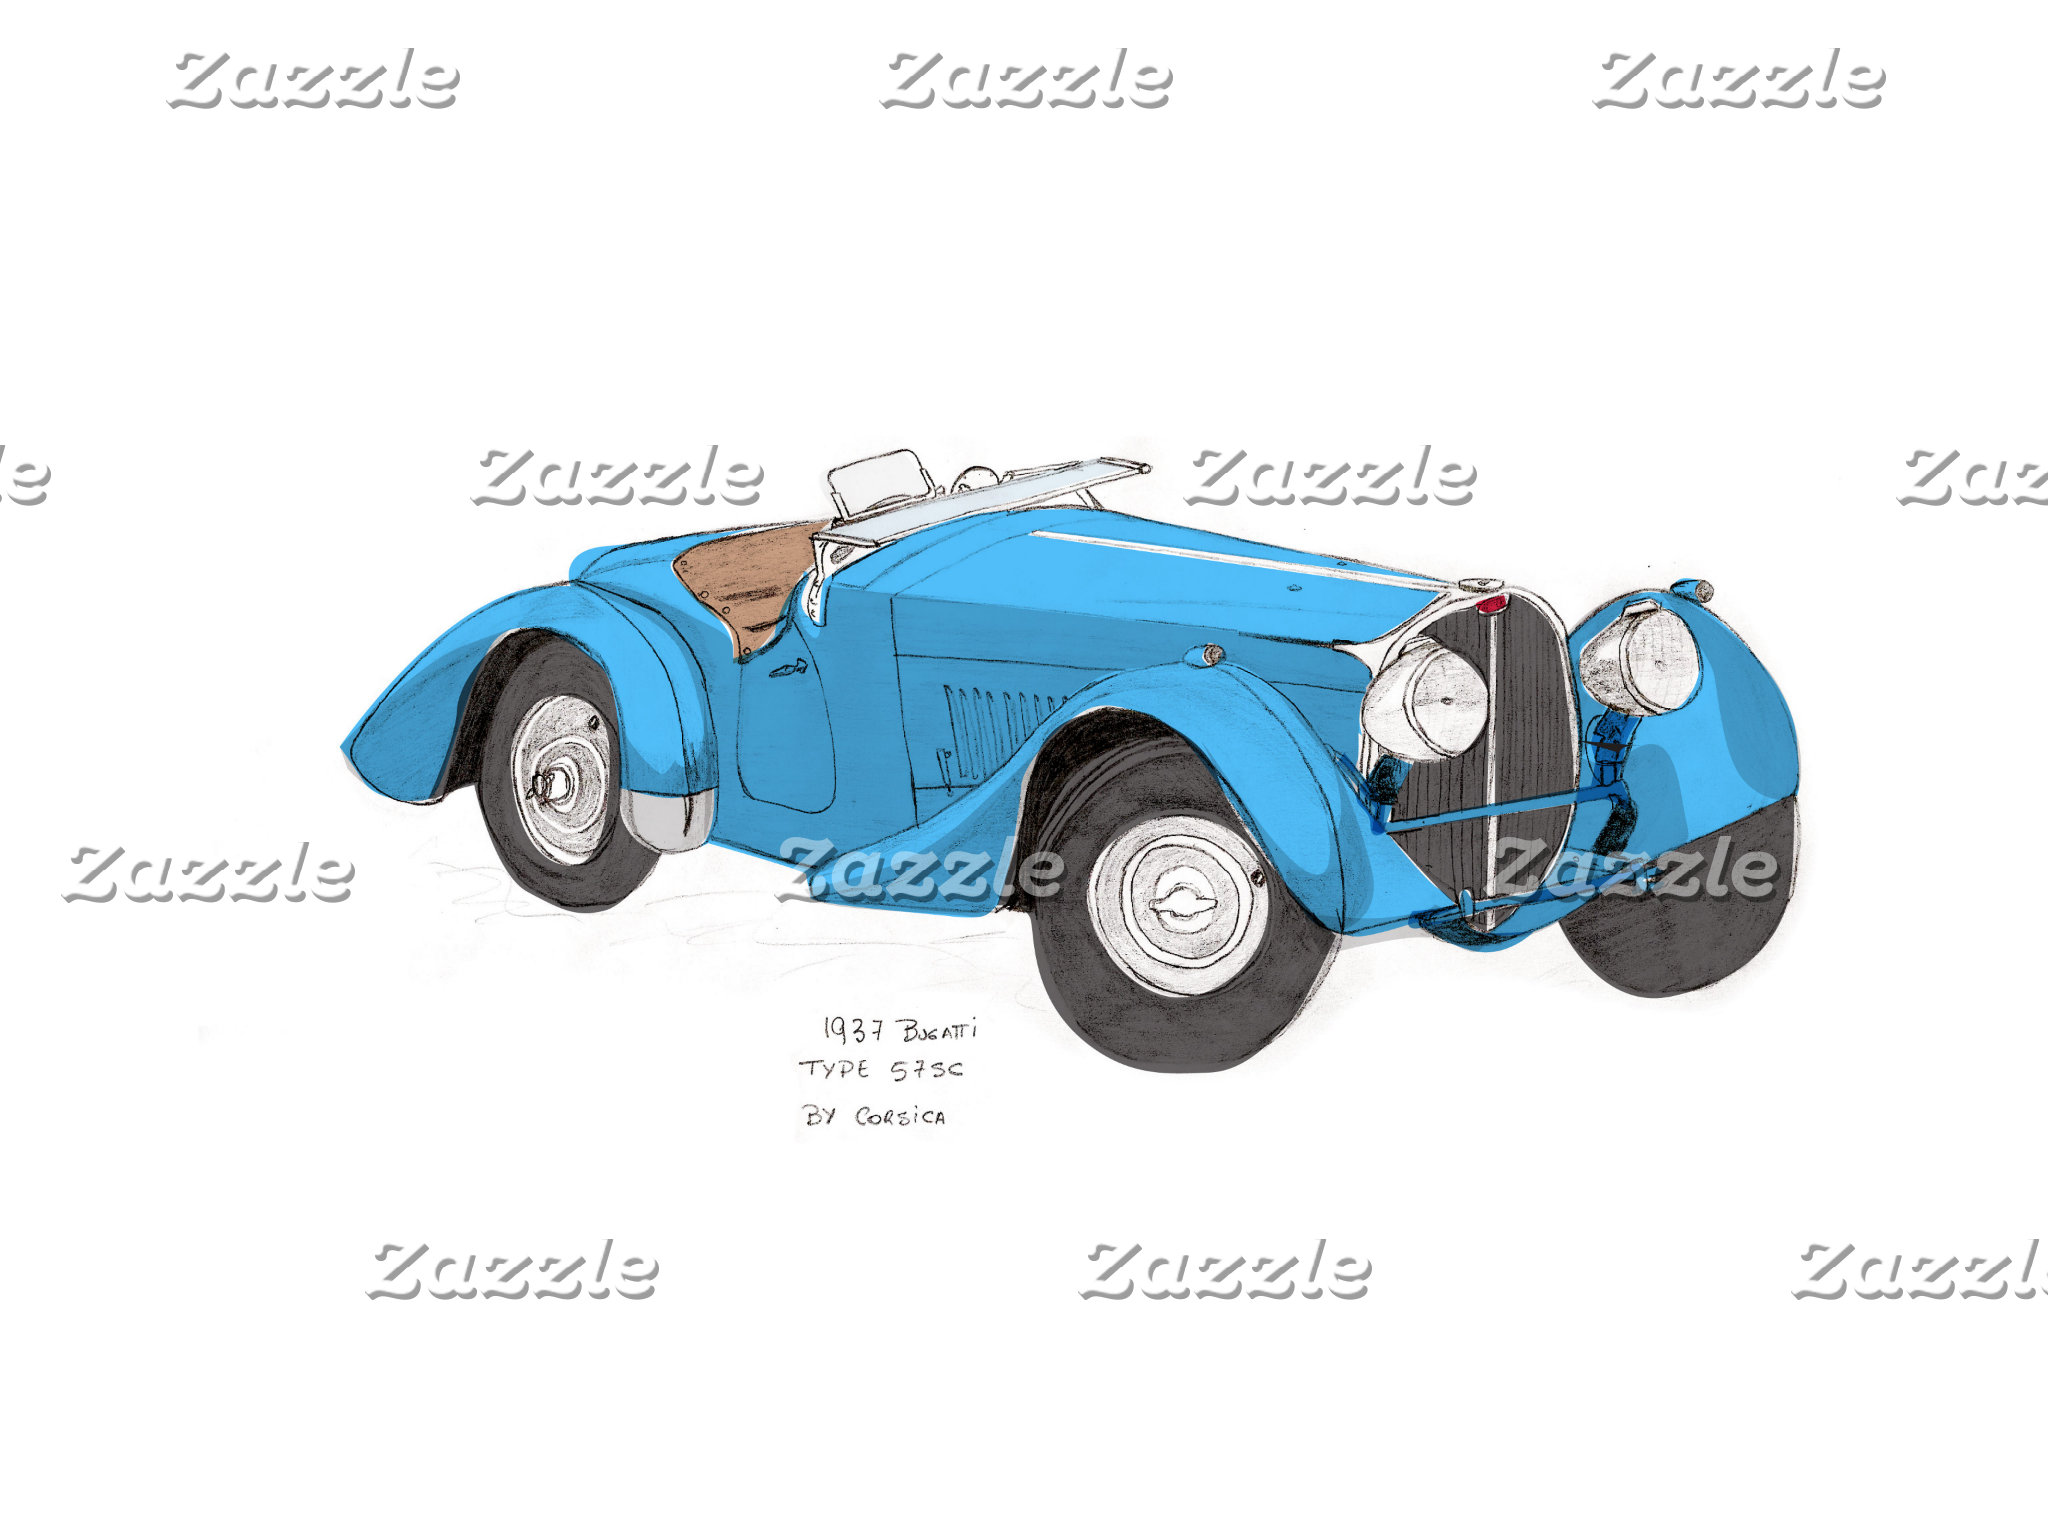 The Conneling Classic Car Collection